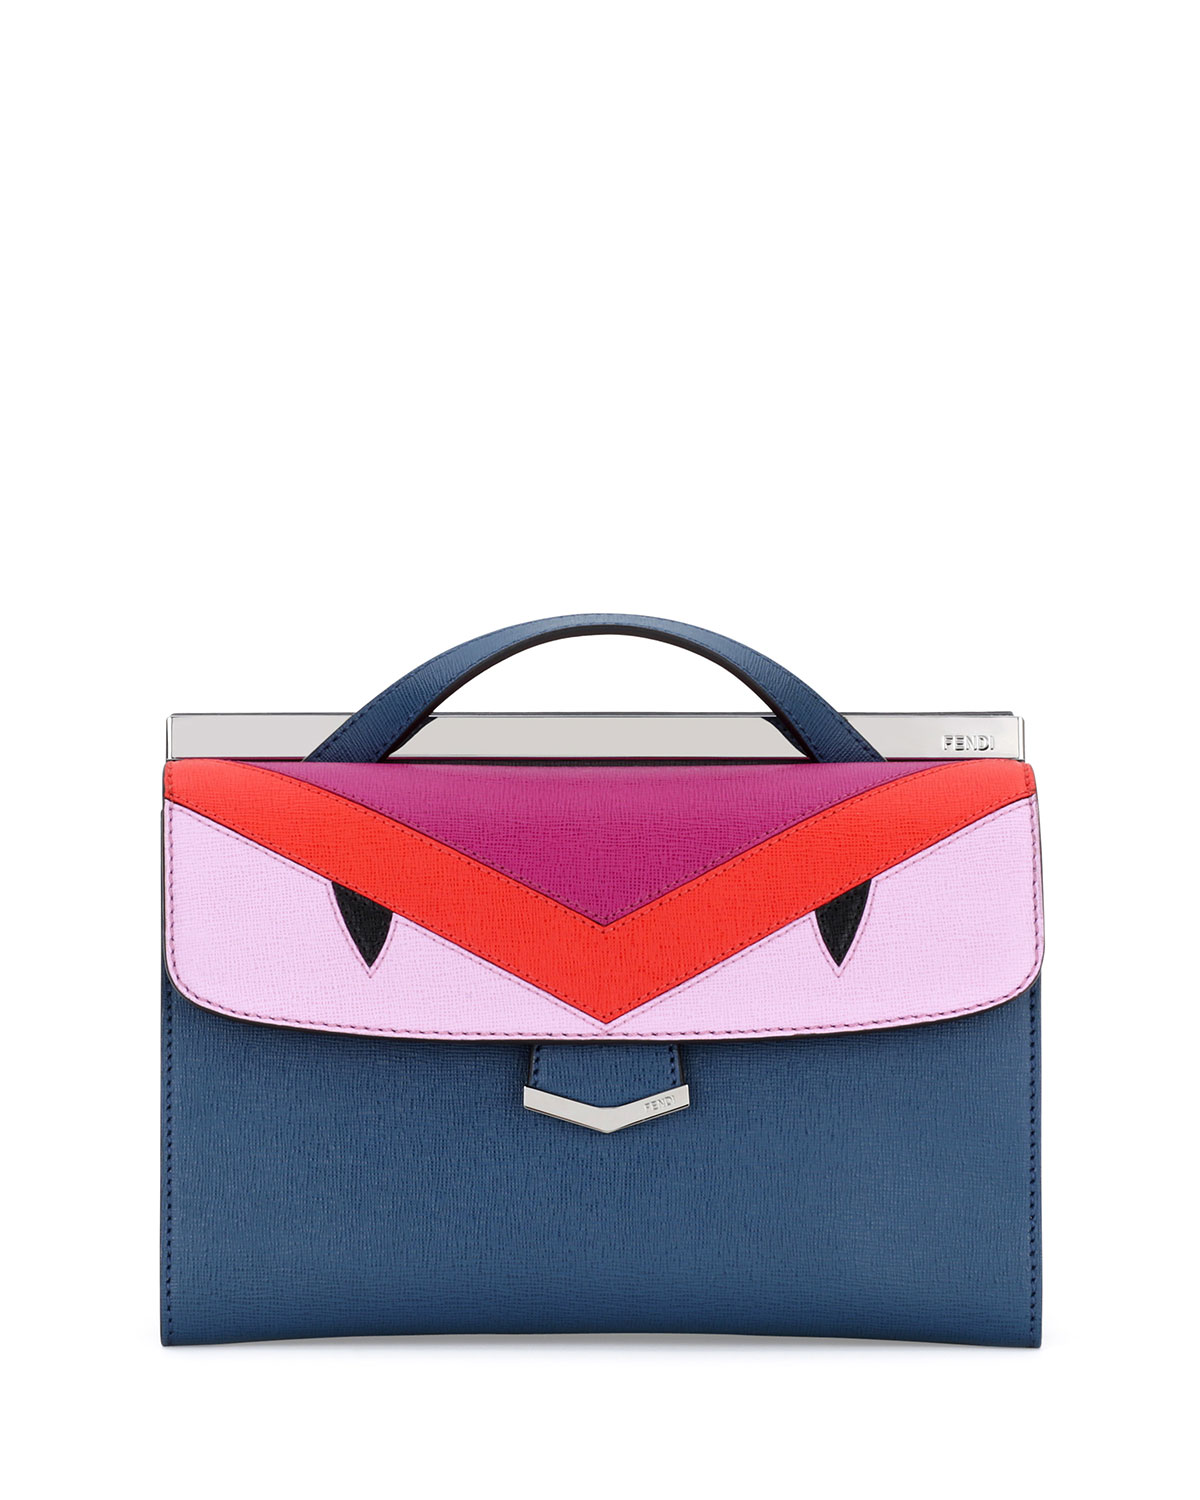 Fendi Demi Jour Mini Monster Bag, Blue Multi   Neiman Marcus 5ee6d1ba93